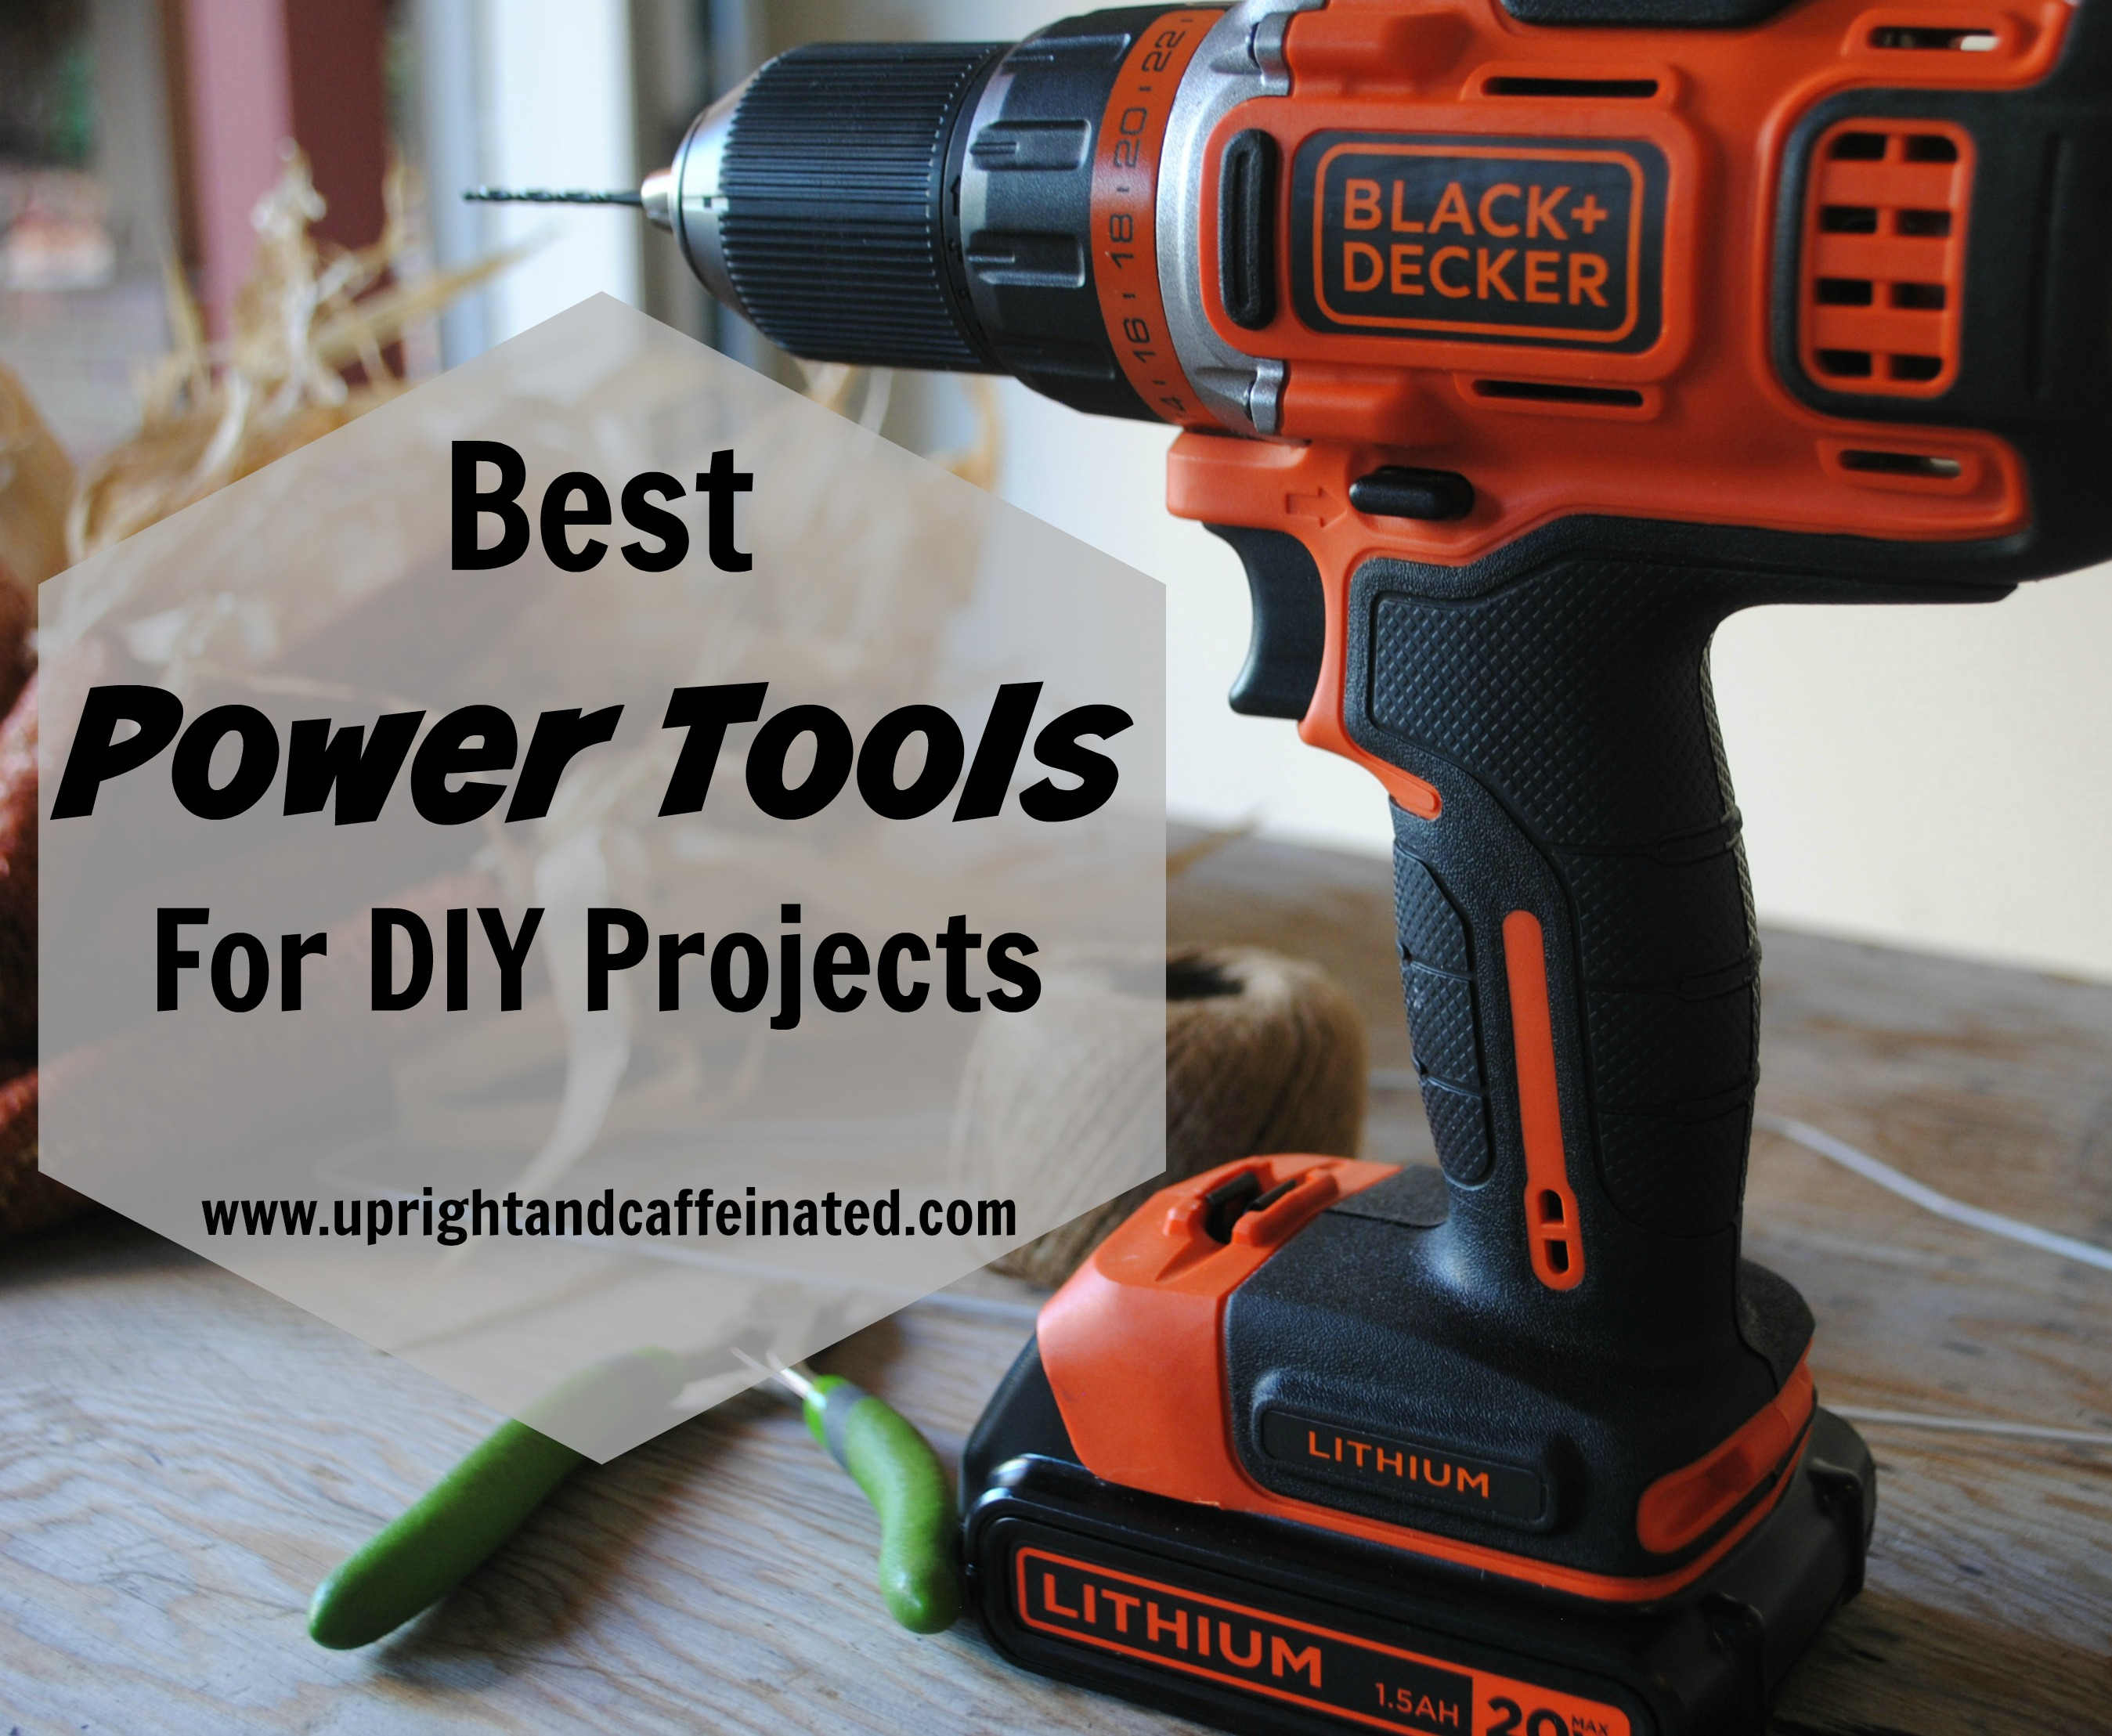 Power Tools: The Best Power Tools for DIY Projects